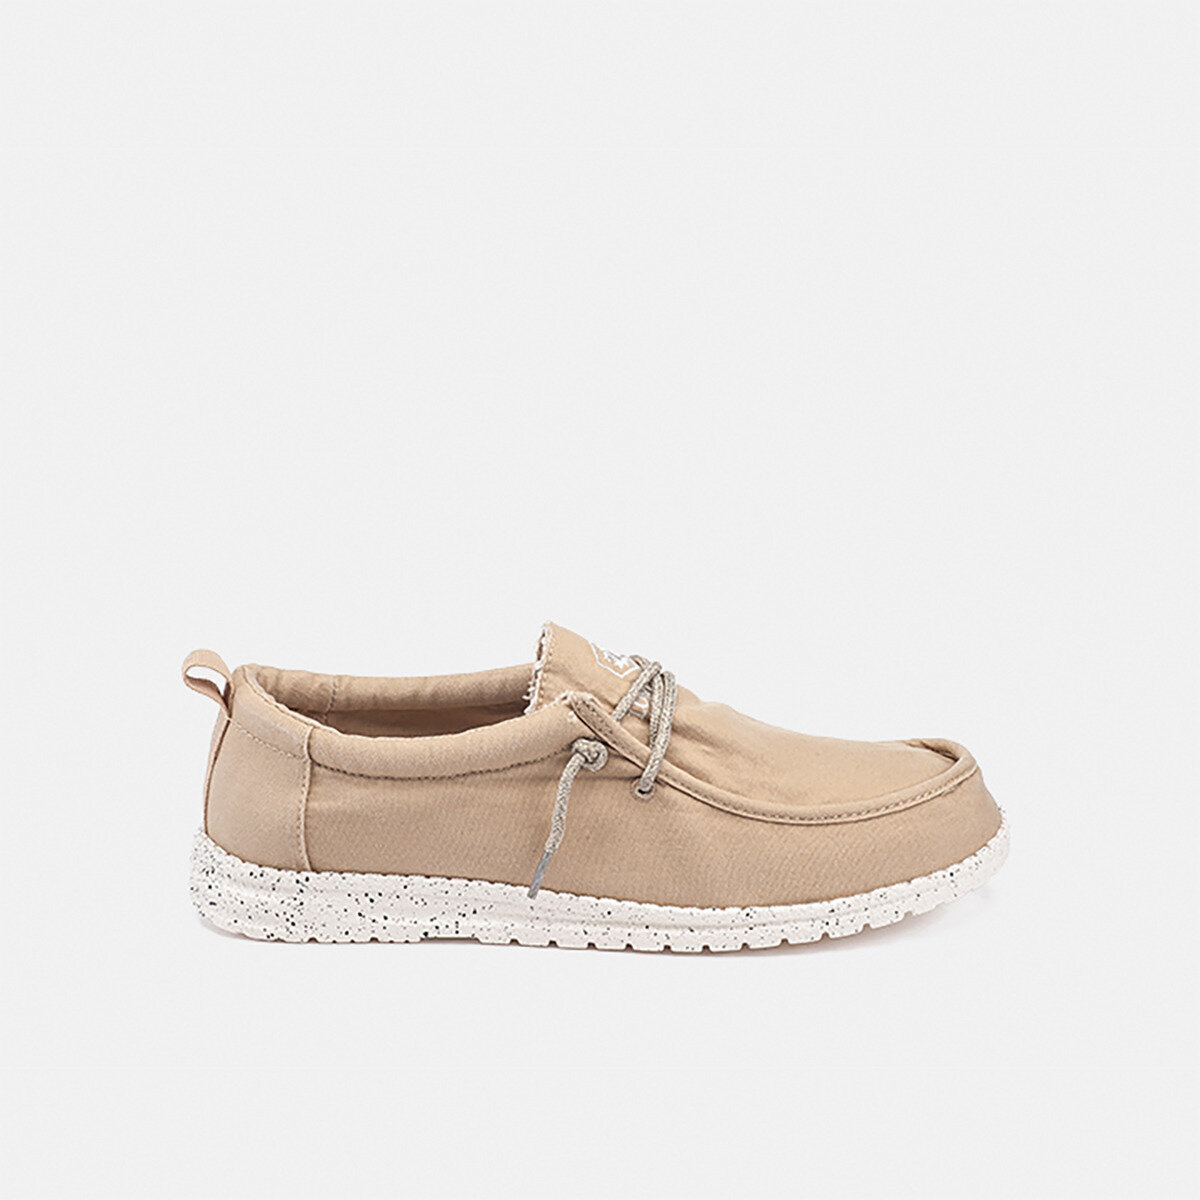 WILLY SAND Man Sneakers